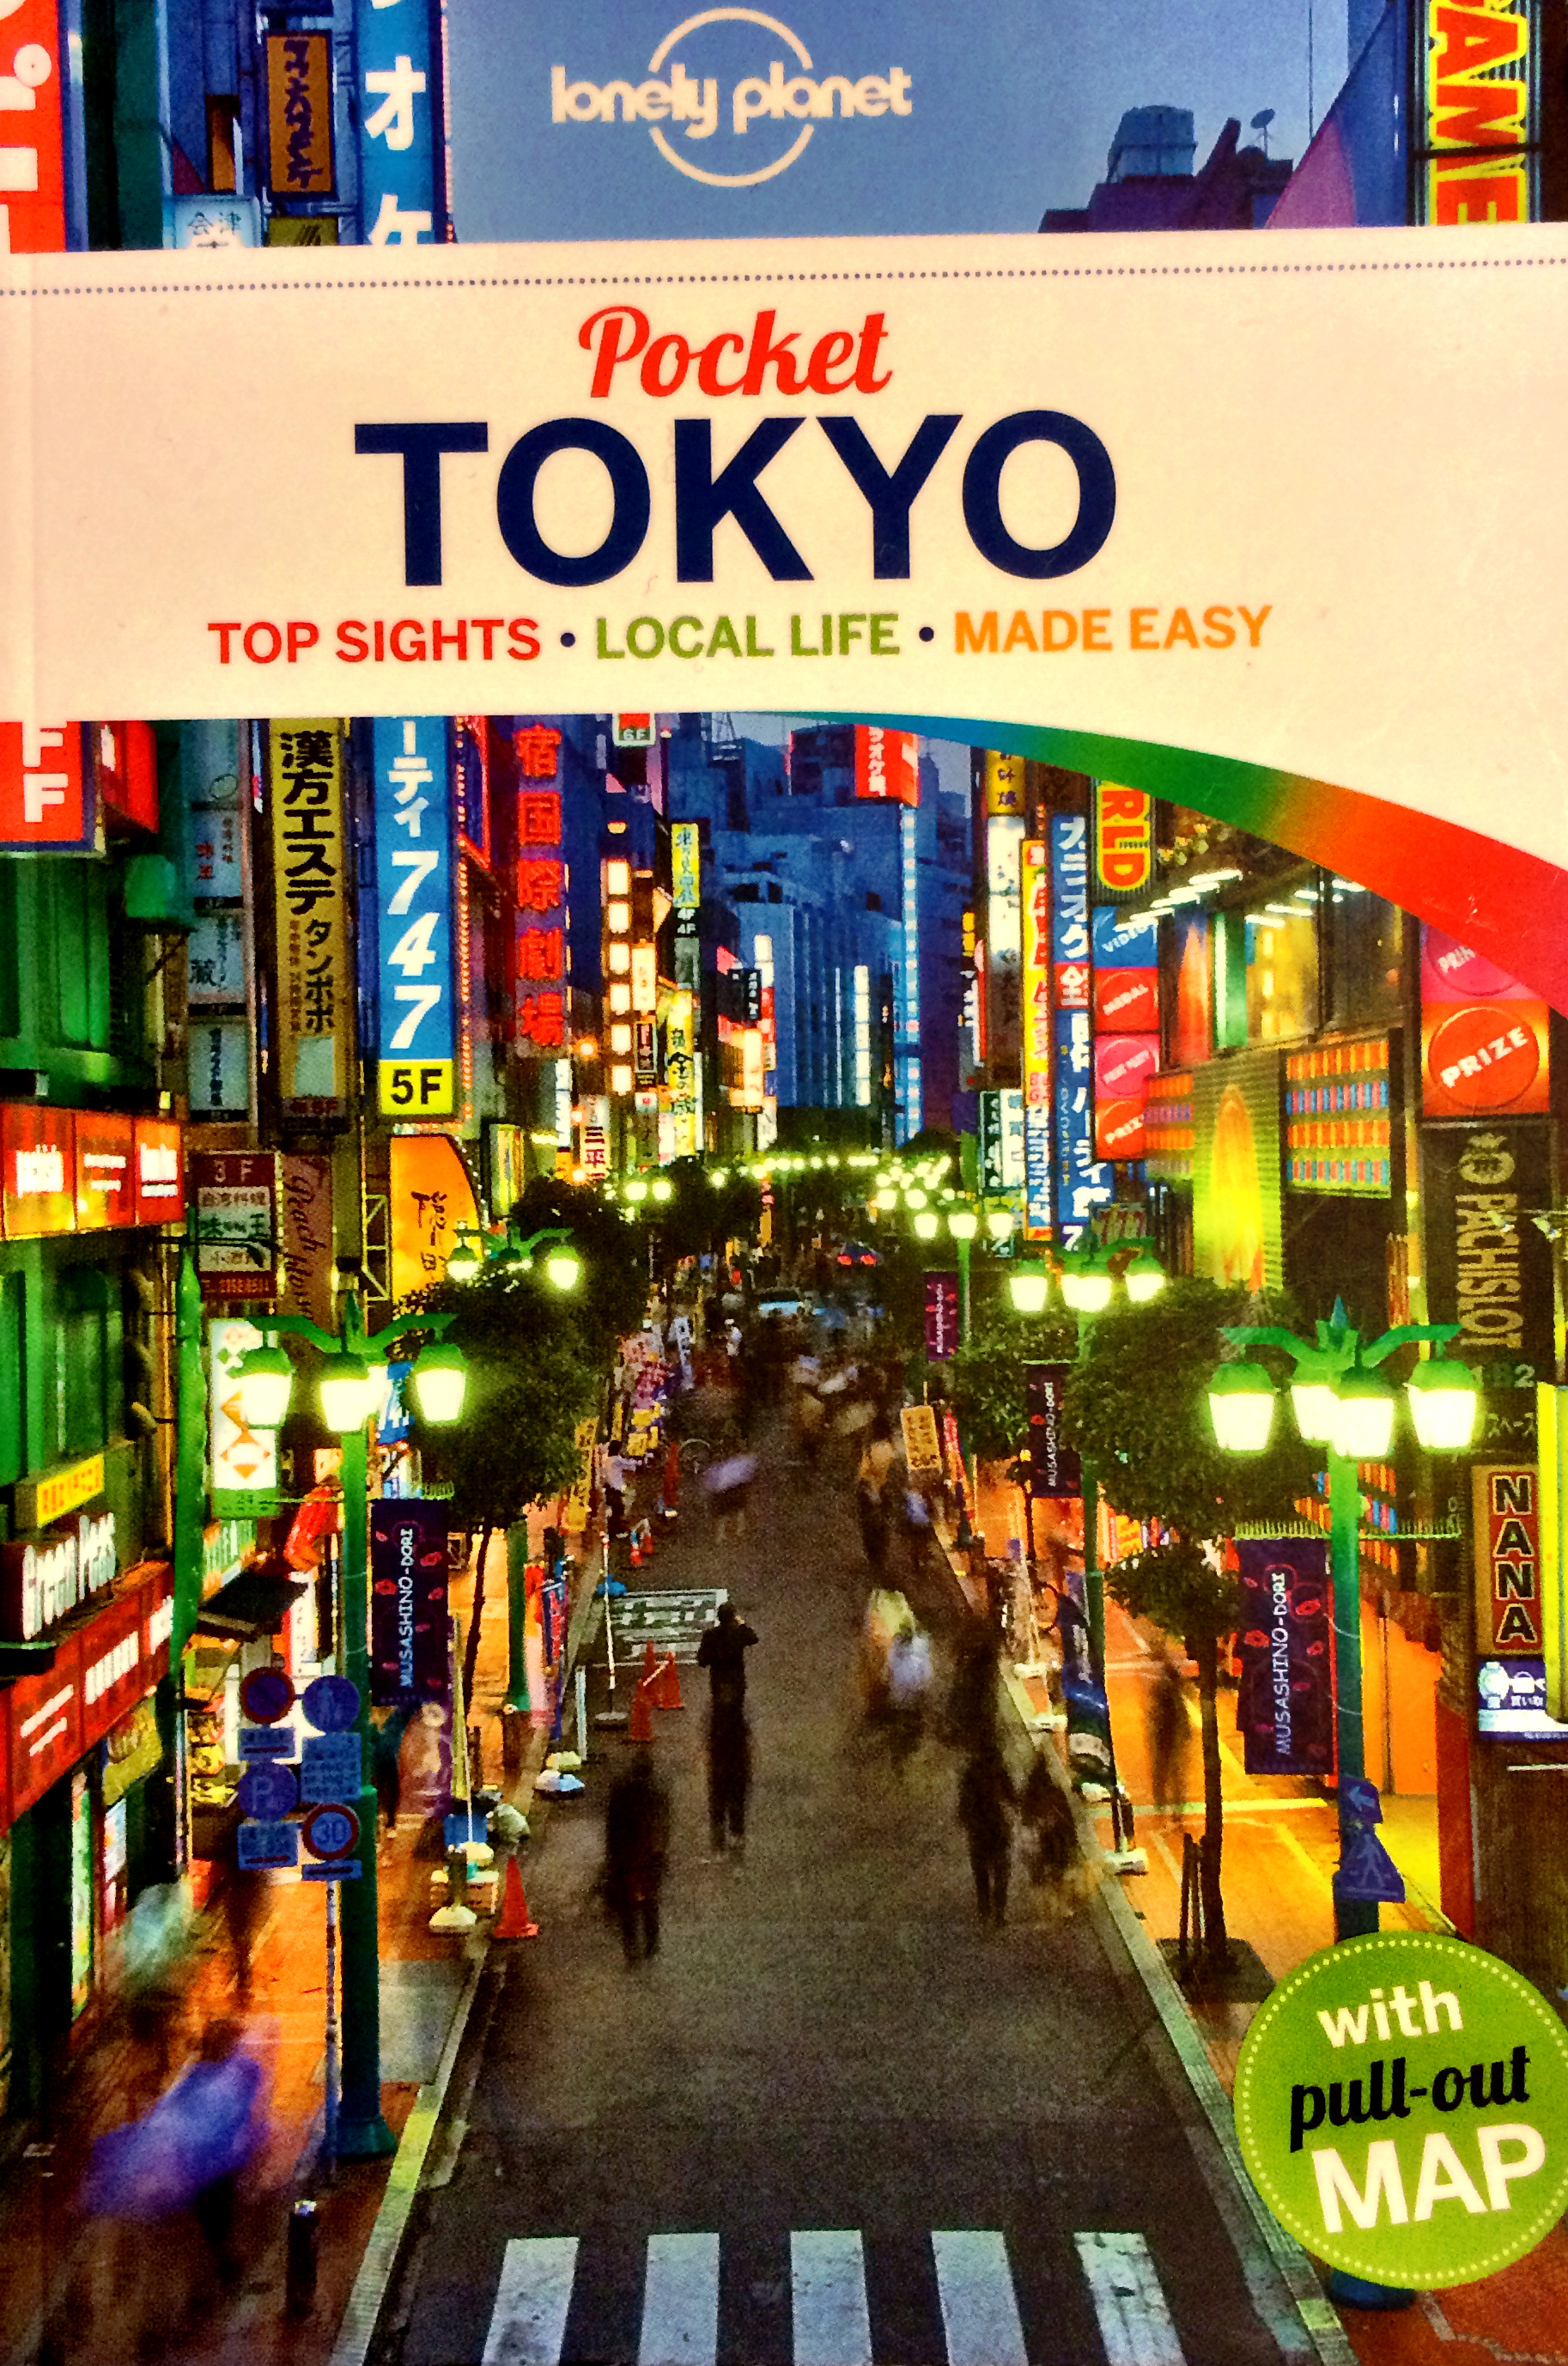 Put Tokyo in your pocket: Lonely Planet's Pocket Tokyo is a great guide book